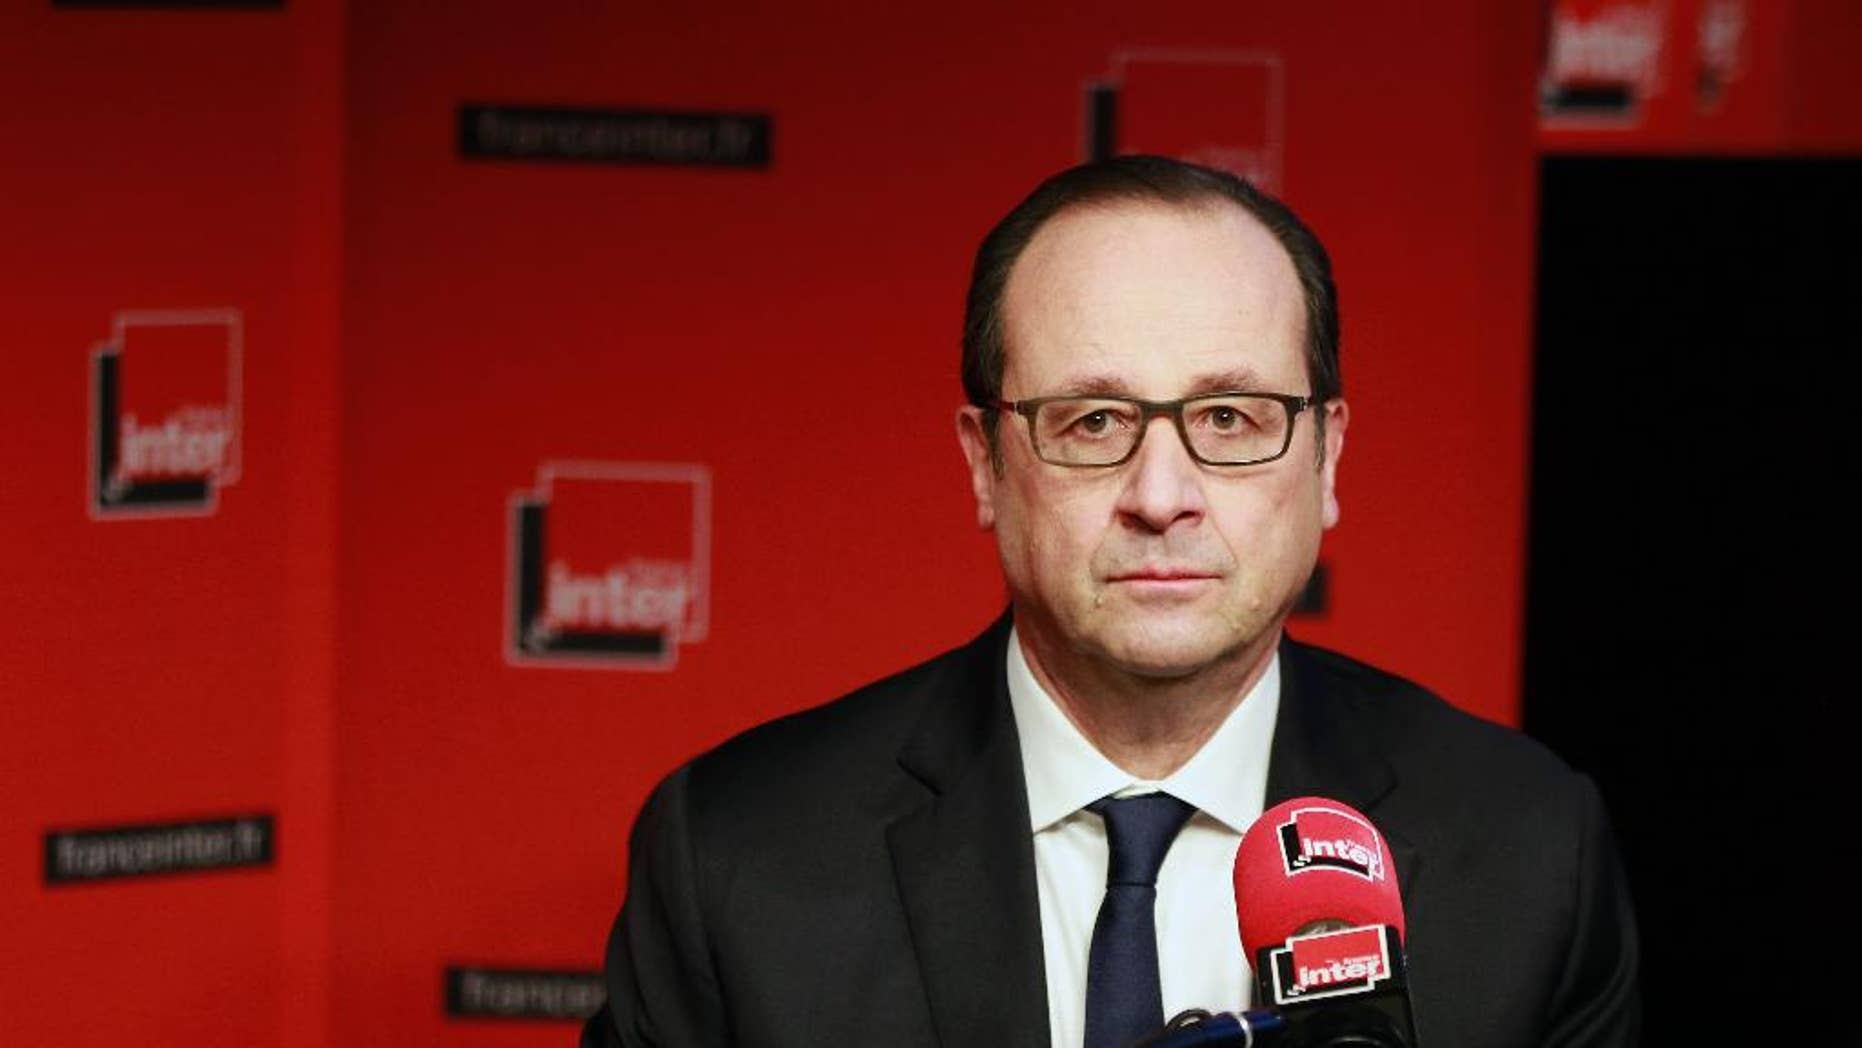 French President Francois Hollande prepares to answer a reporter's question during a live interview on French radio station France Inter in Paris Monday, Jan. 5, 2015. (AP Photo/Remy de la Mauviniere/Pool)